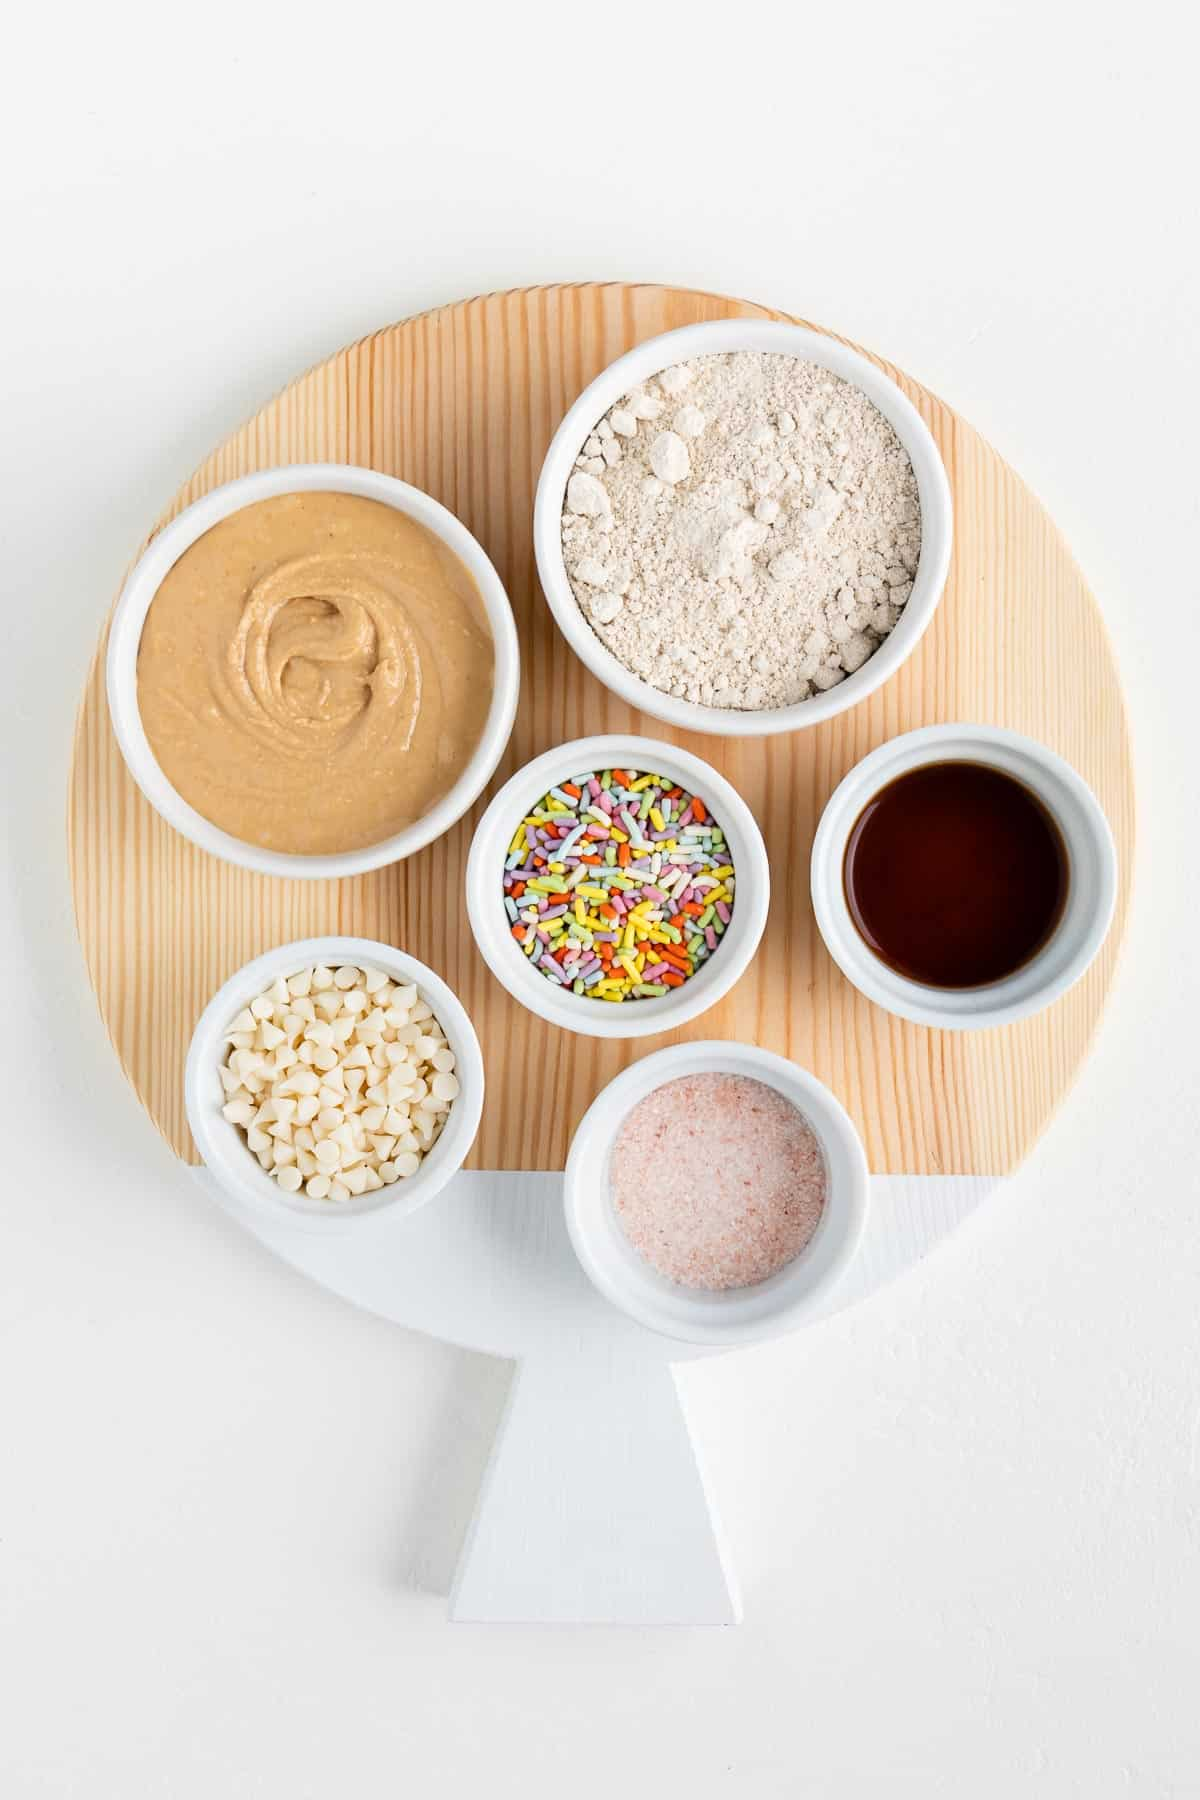 round wooden cutting board with cashew butter, sprinkles, oat flour, vanilla extract, and white chocolate chips in small white bowls